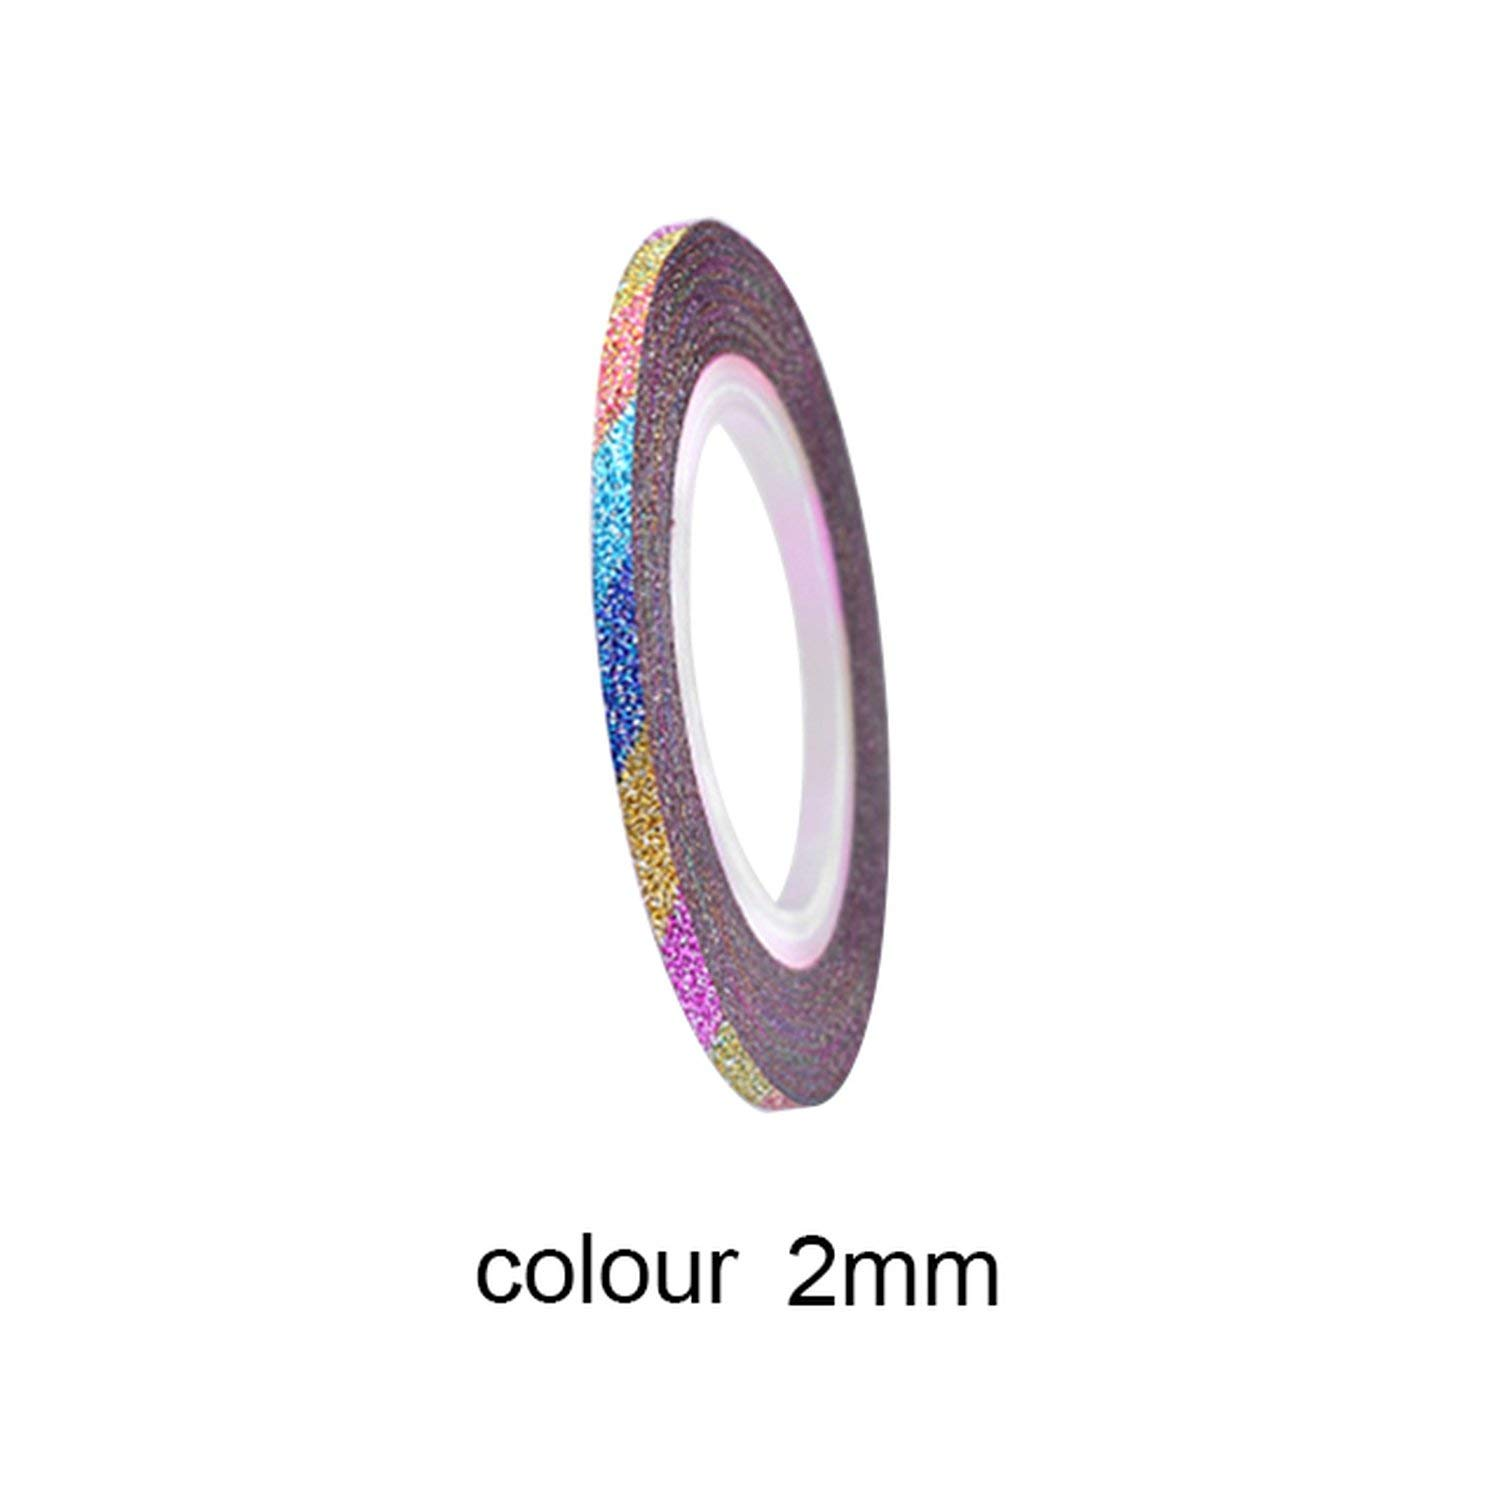 1Roll 2Mm Nail Art Multicolor Glitter Stripping Tape Line Strips Decor Tools Nail Sticker Diy Beauty Accessories,Multicolor by Mango-ice